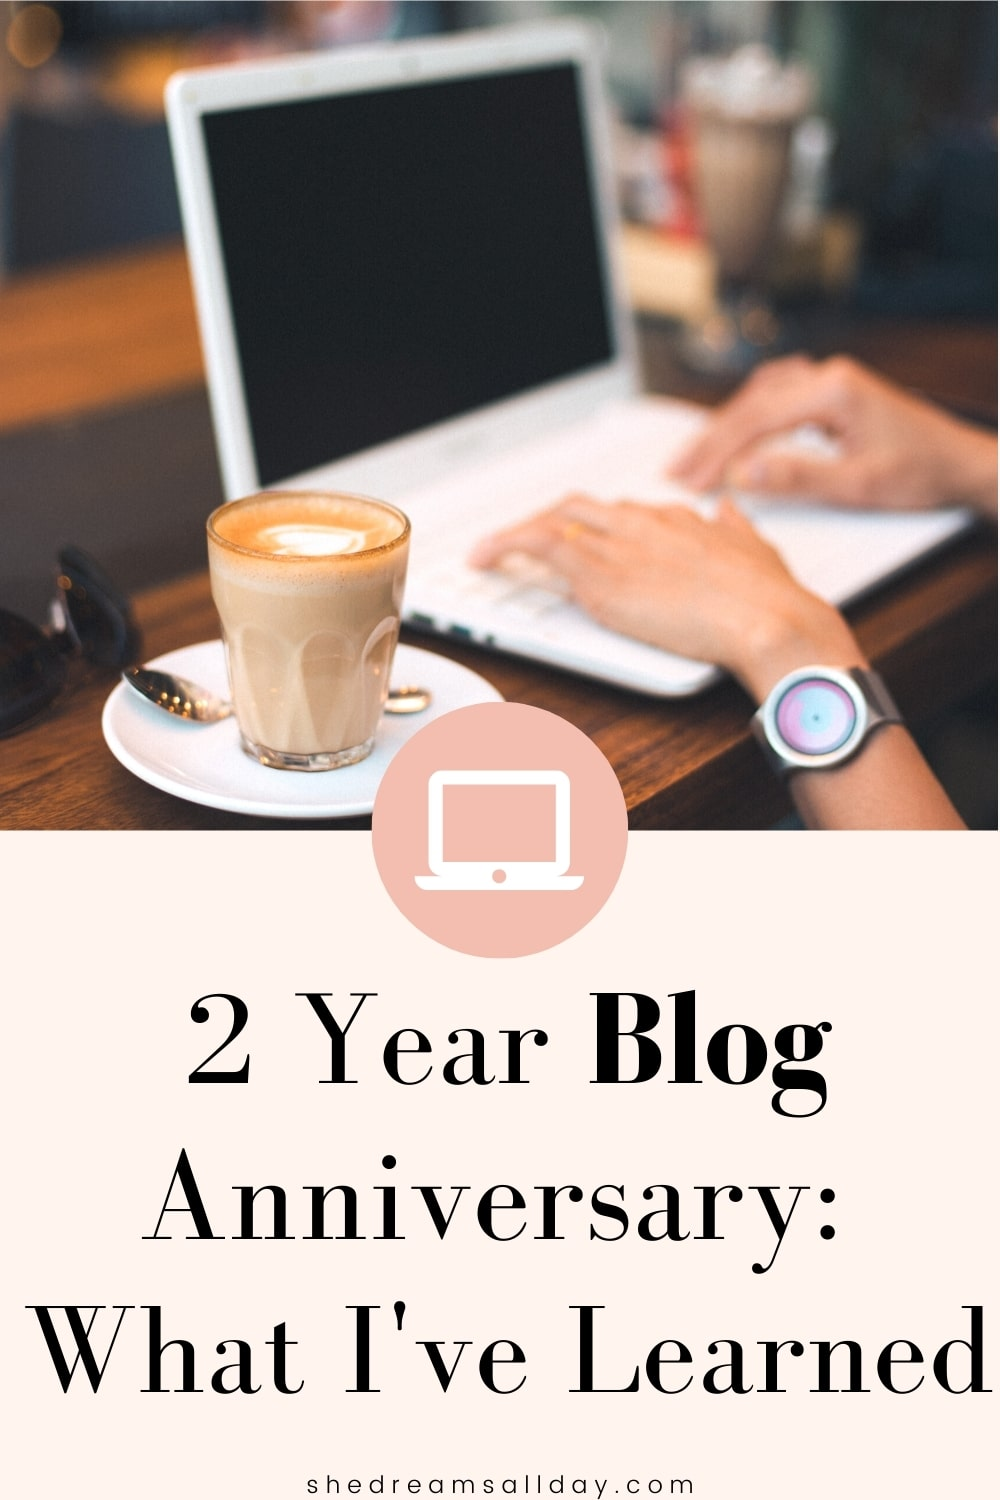 My 2 Year Blog Anniversary: Lessons Learned